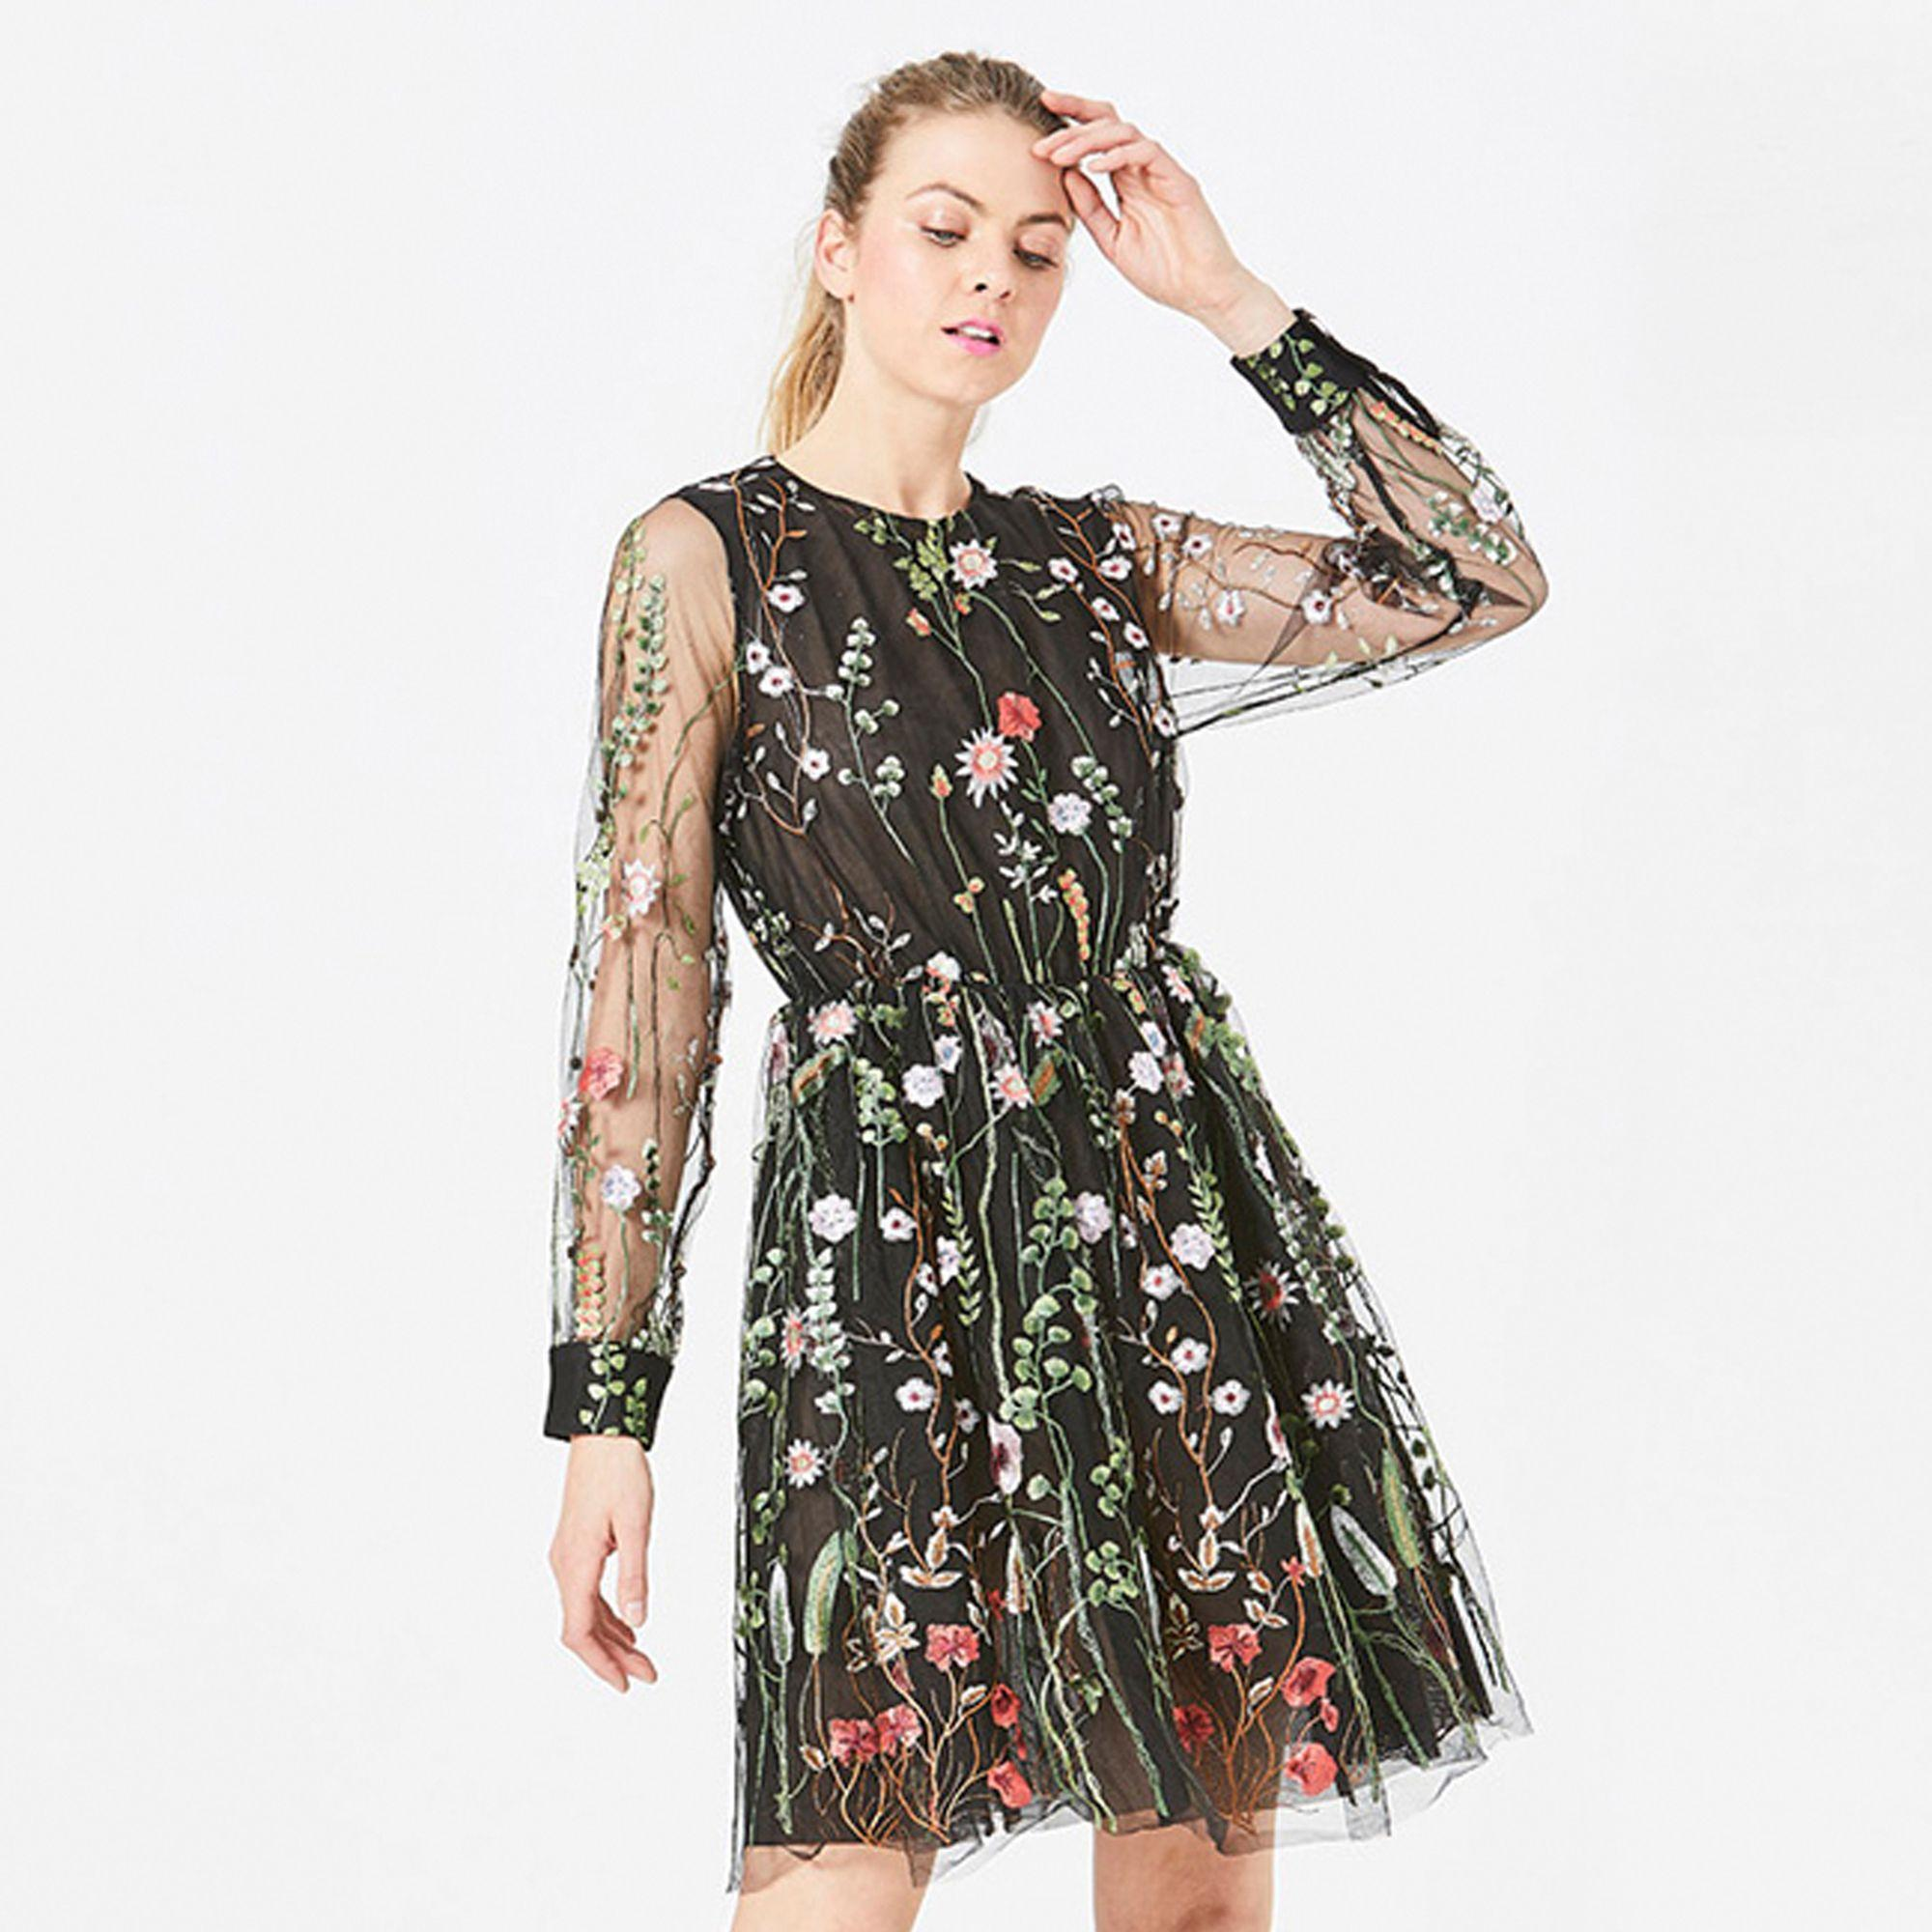 6fcd5a84cd9f Angeleye Black Sheer Lace Embroidered Floral Long Sleeved Dress in ...